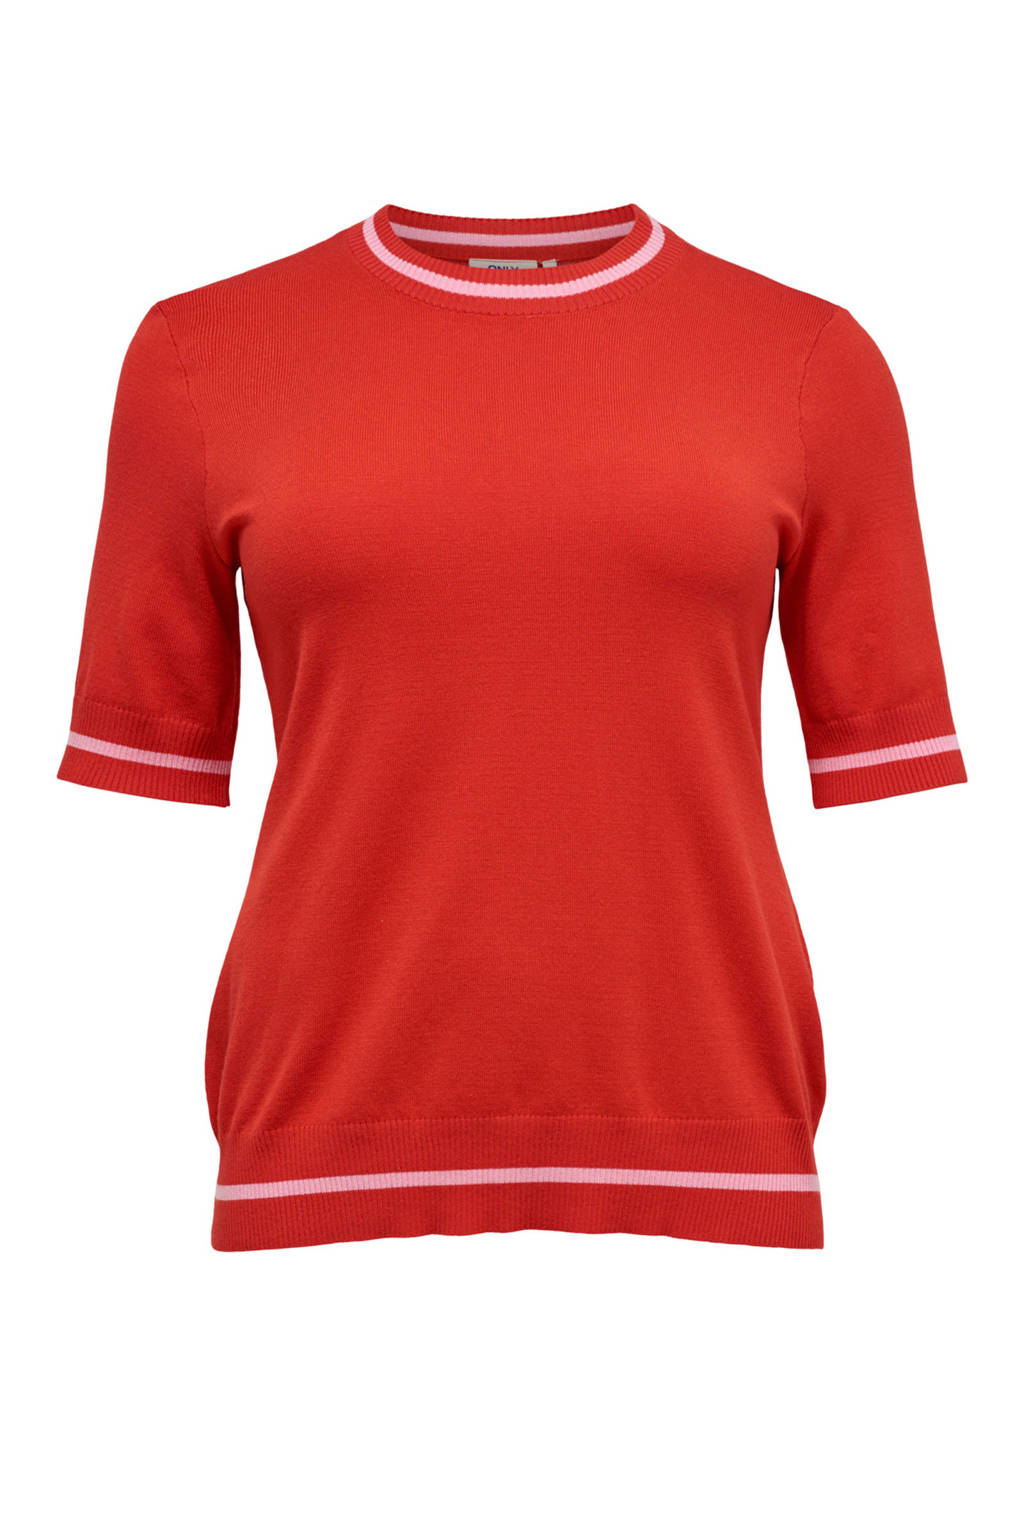 ONLY carmakoma top met gestreepte rib boorden, Rood/roze